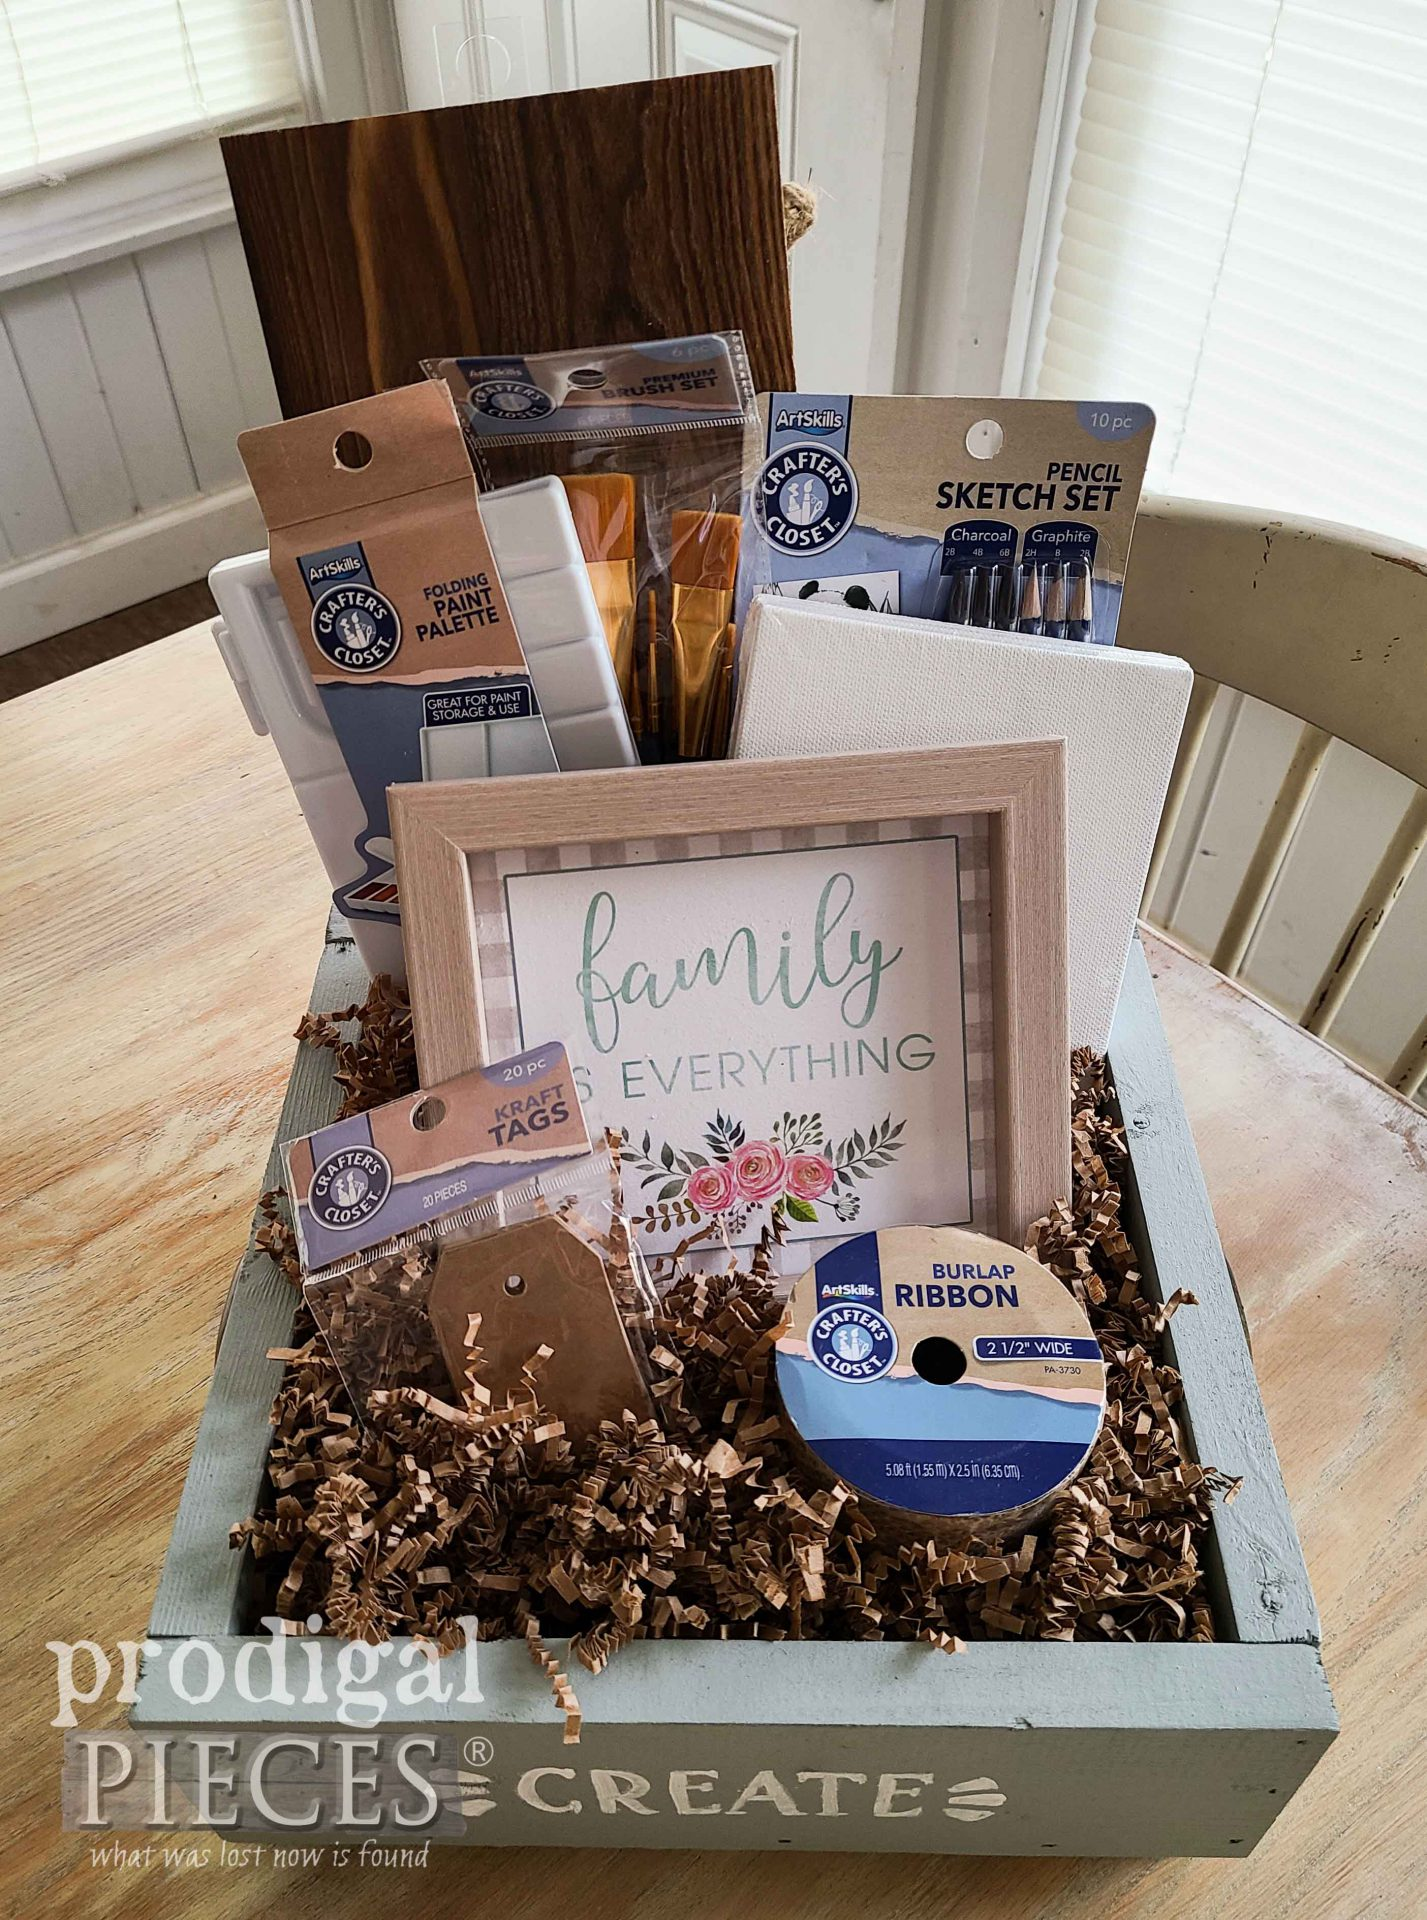 Creative Craft Gift Box DIY Tutorial by Larissa of Prodigal Pieces | prodigalpieces.com #prodigalpieces #gift #home #homedecor